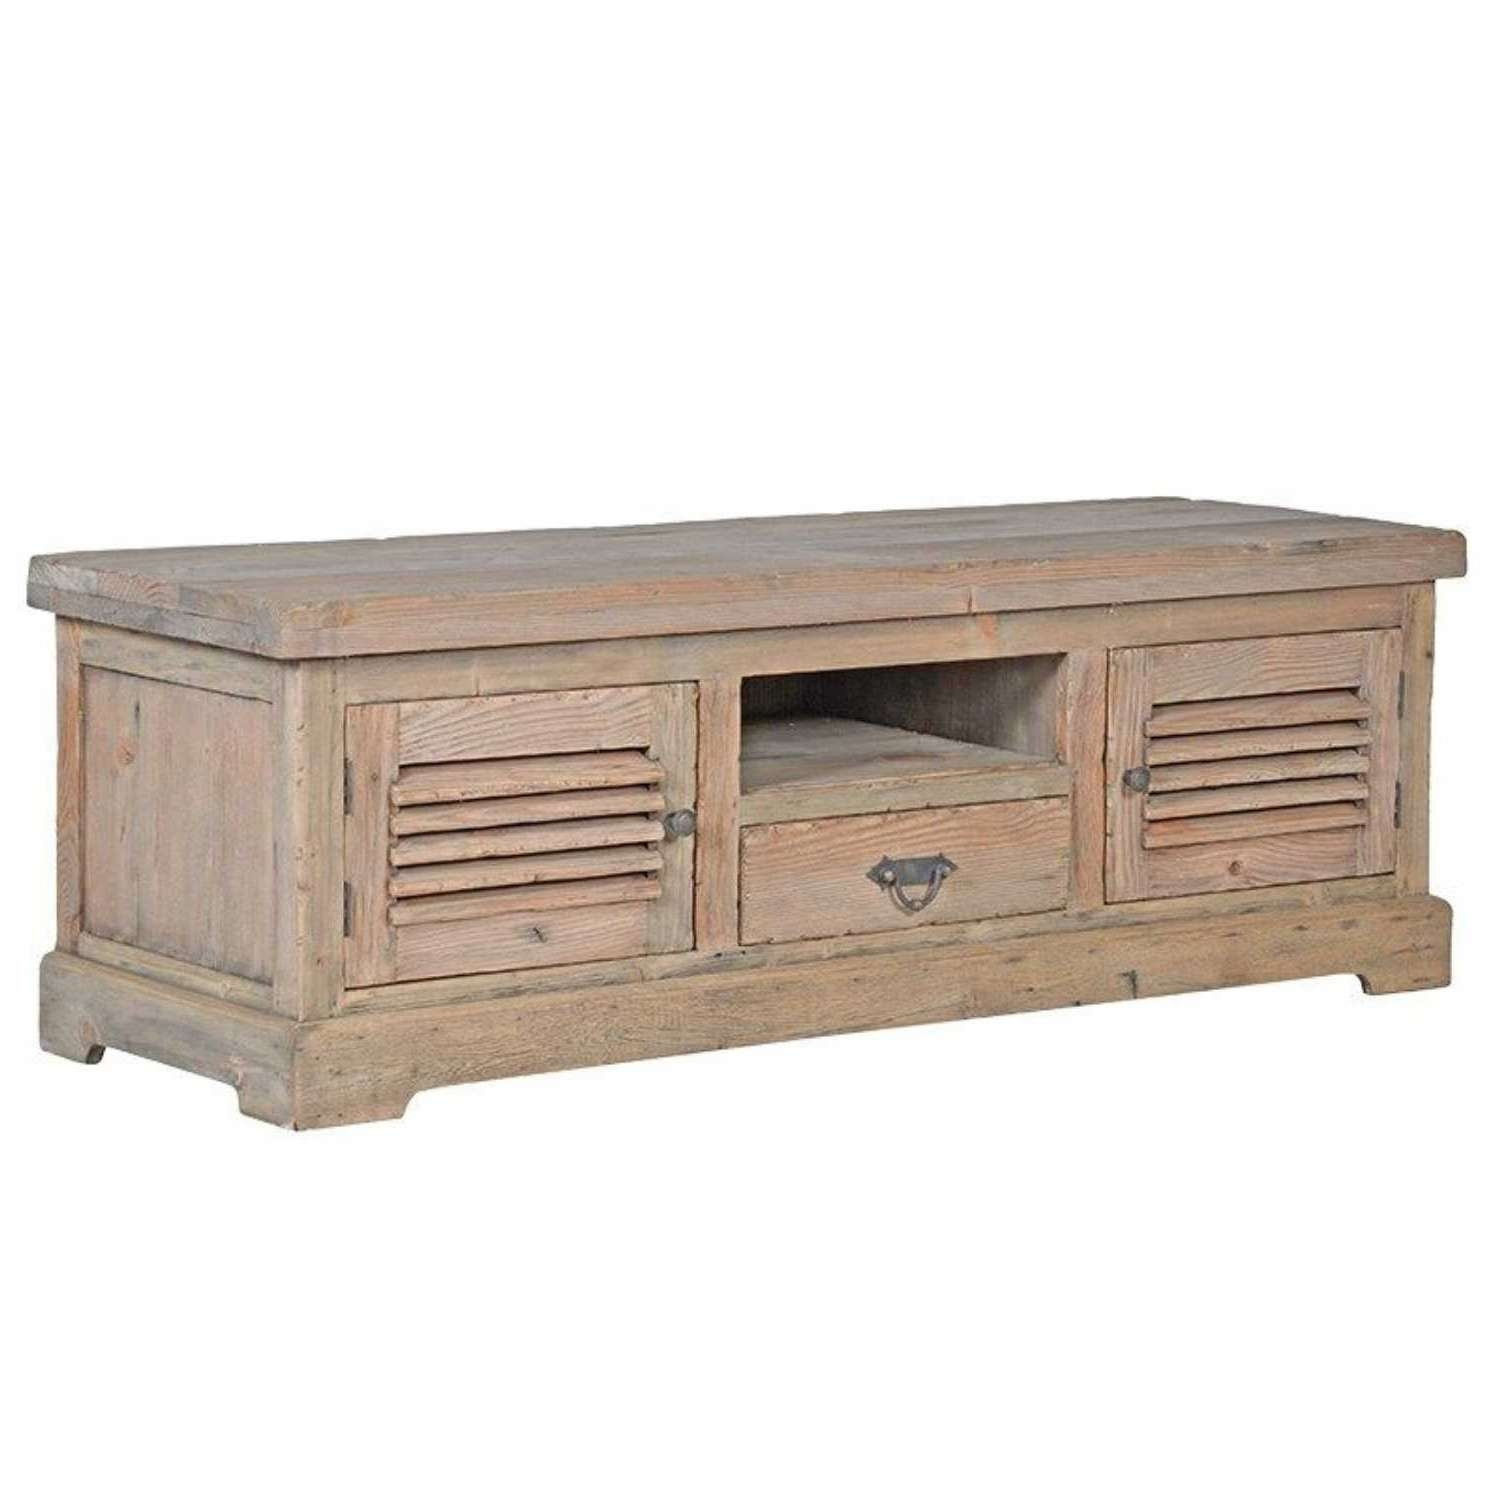 Colonial Reclaimed Pine Tv Cabinet With 2 Doors Regarding Pine Tv Cabinets (View 18 of 20)